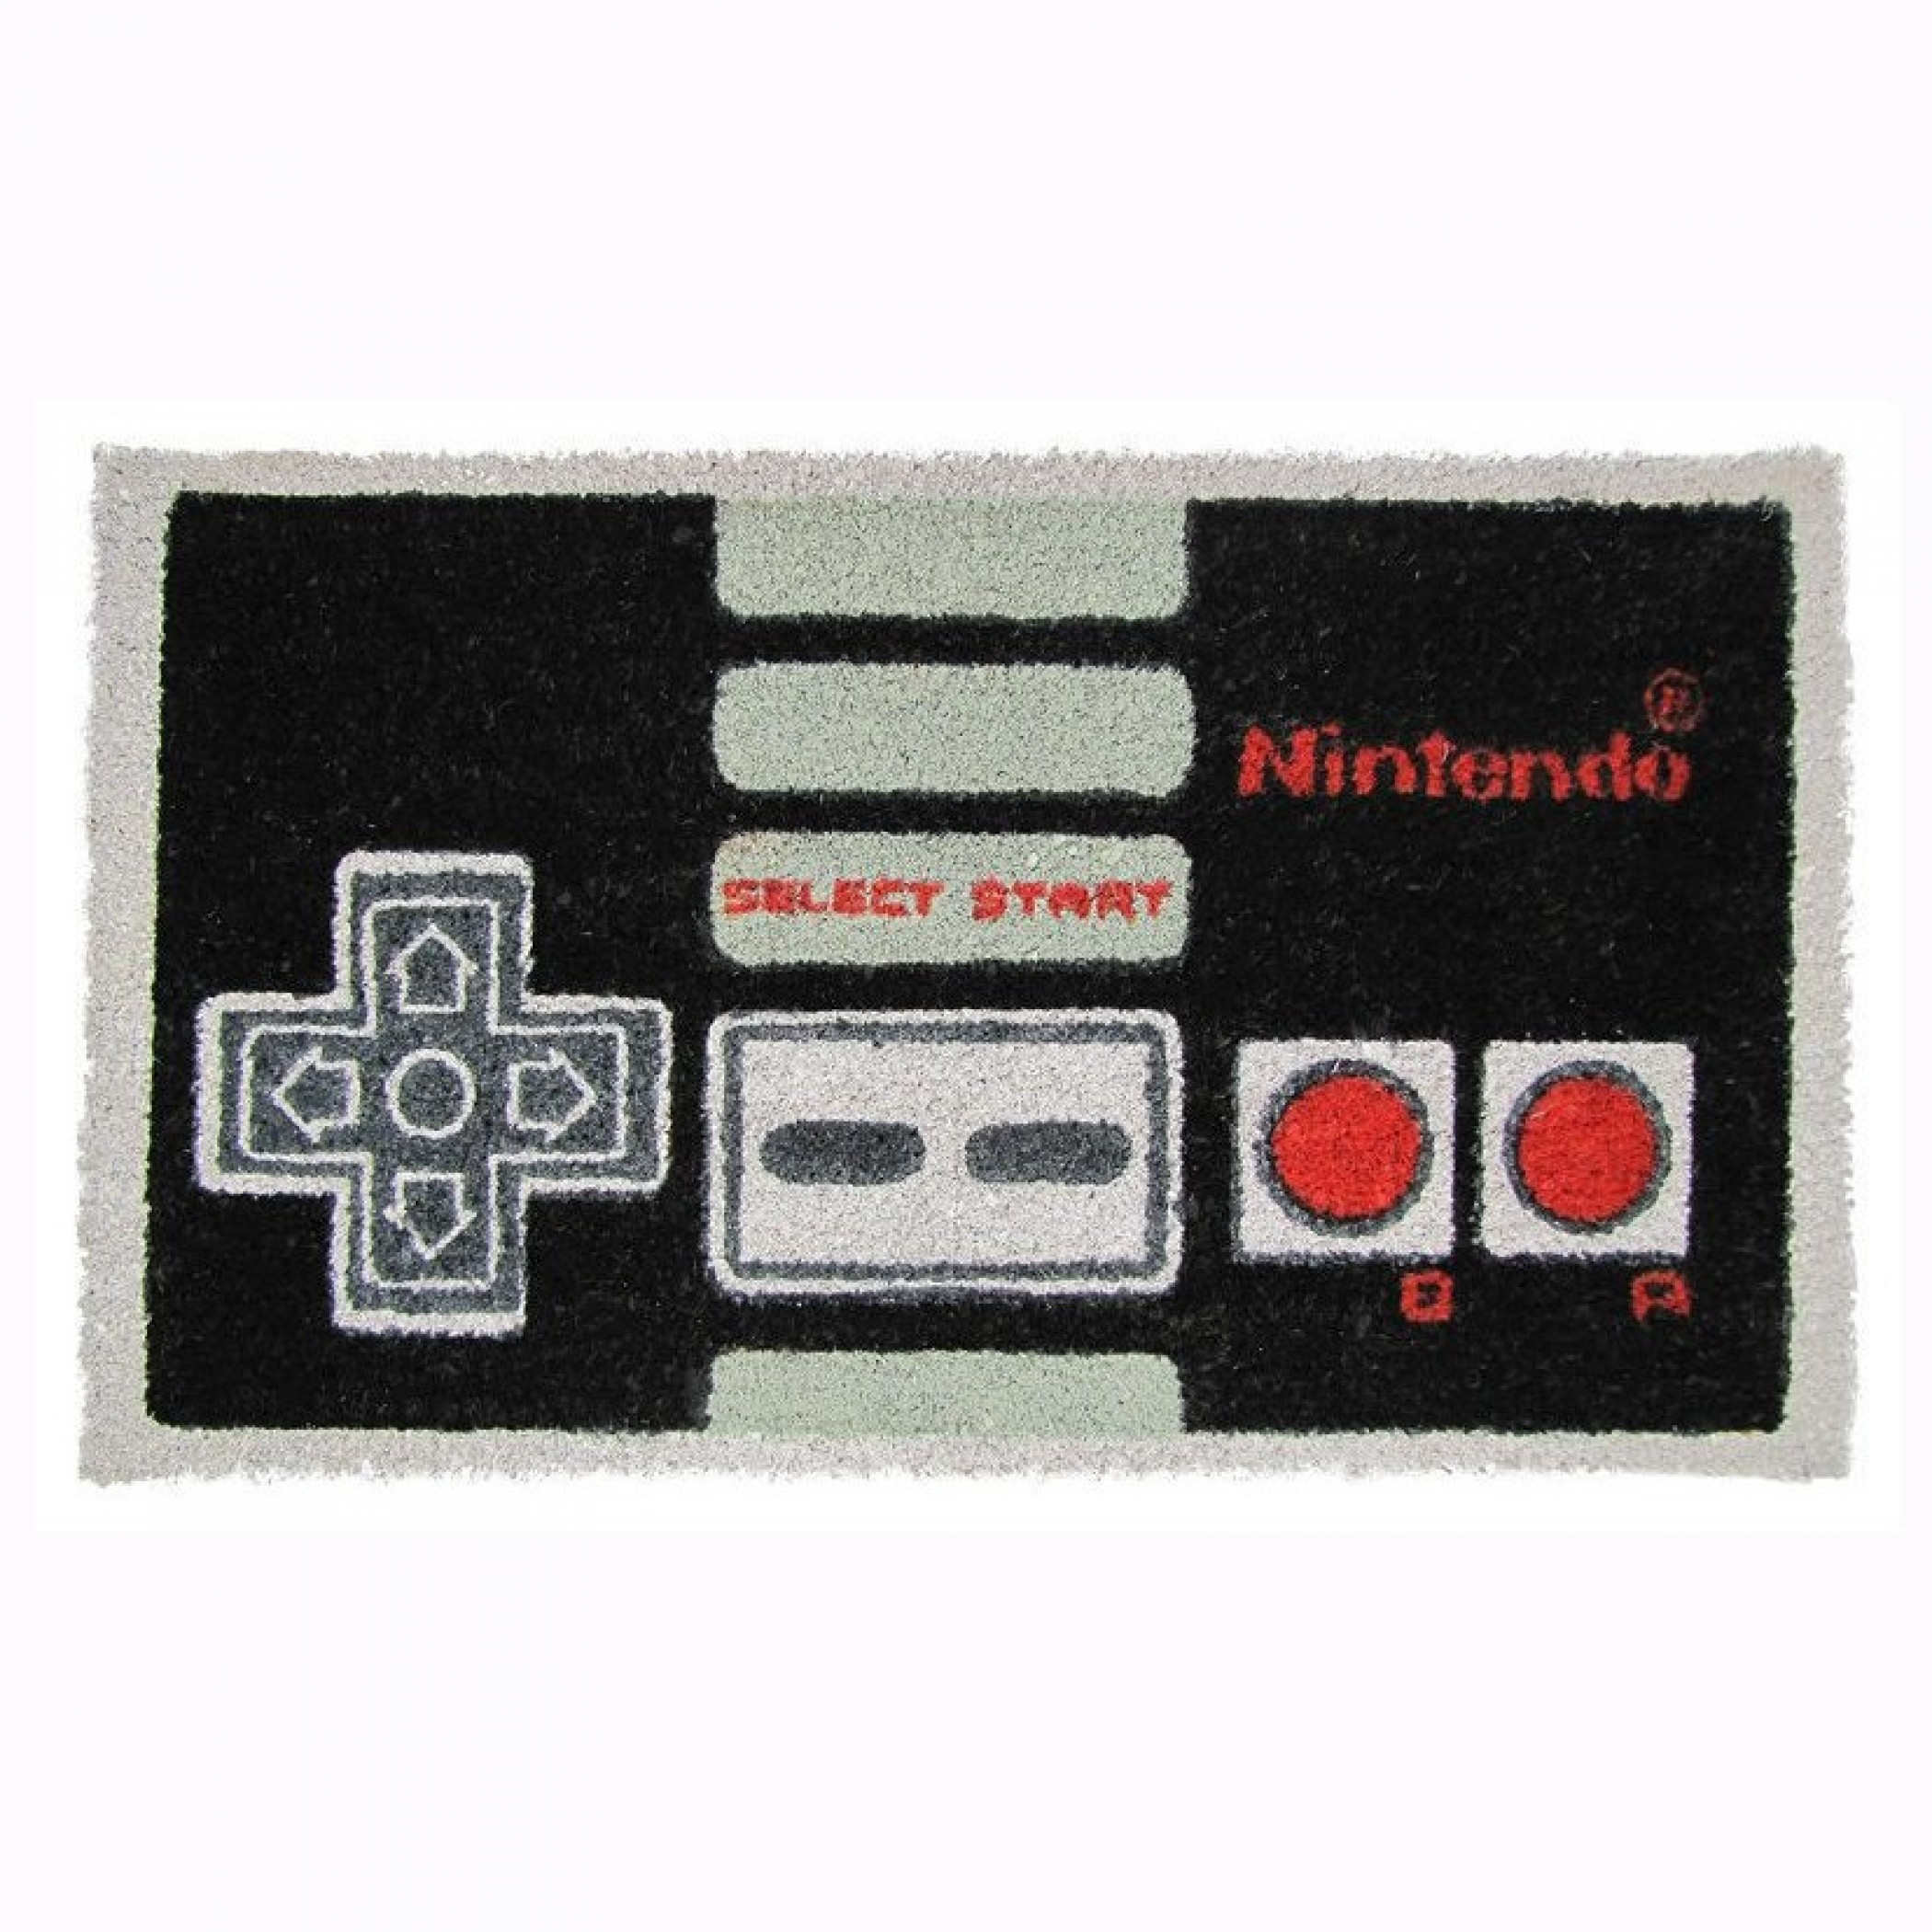 "Nintendo Controller 17""x 29"" Doormat with Non-skid Back"